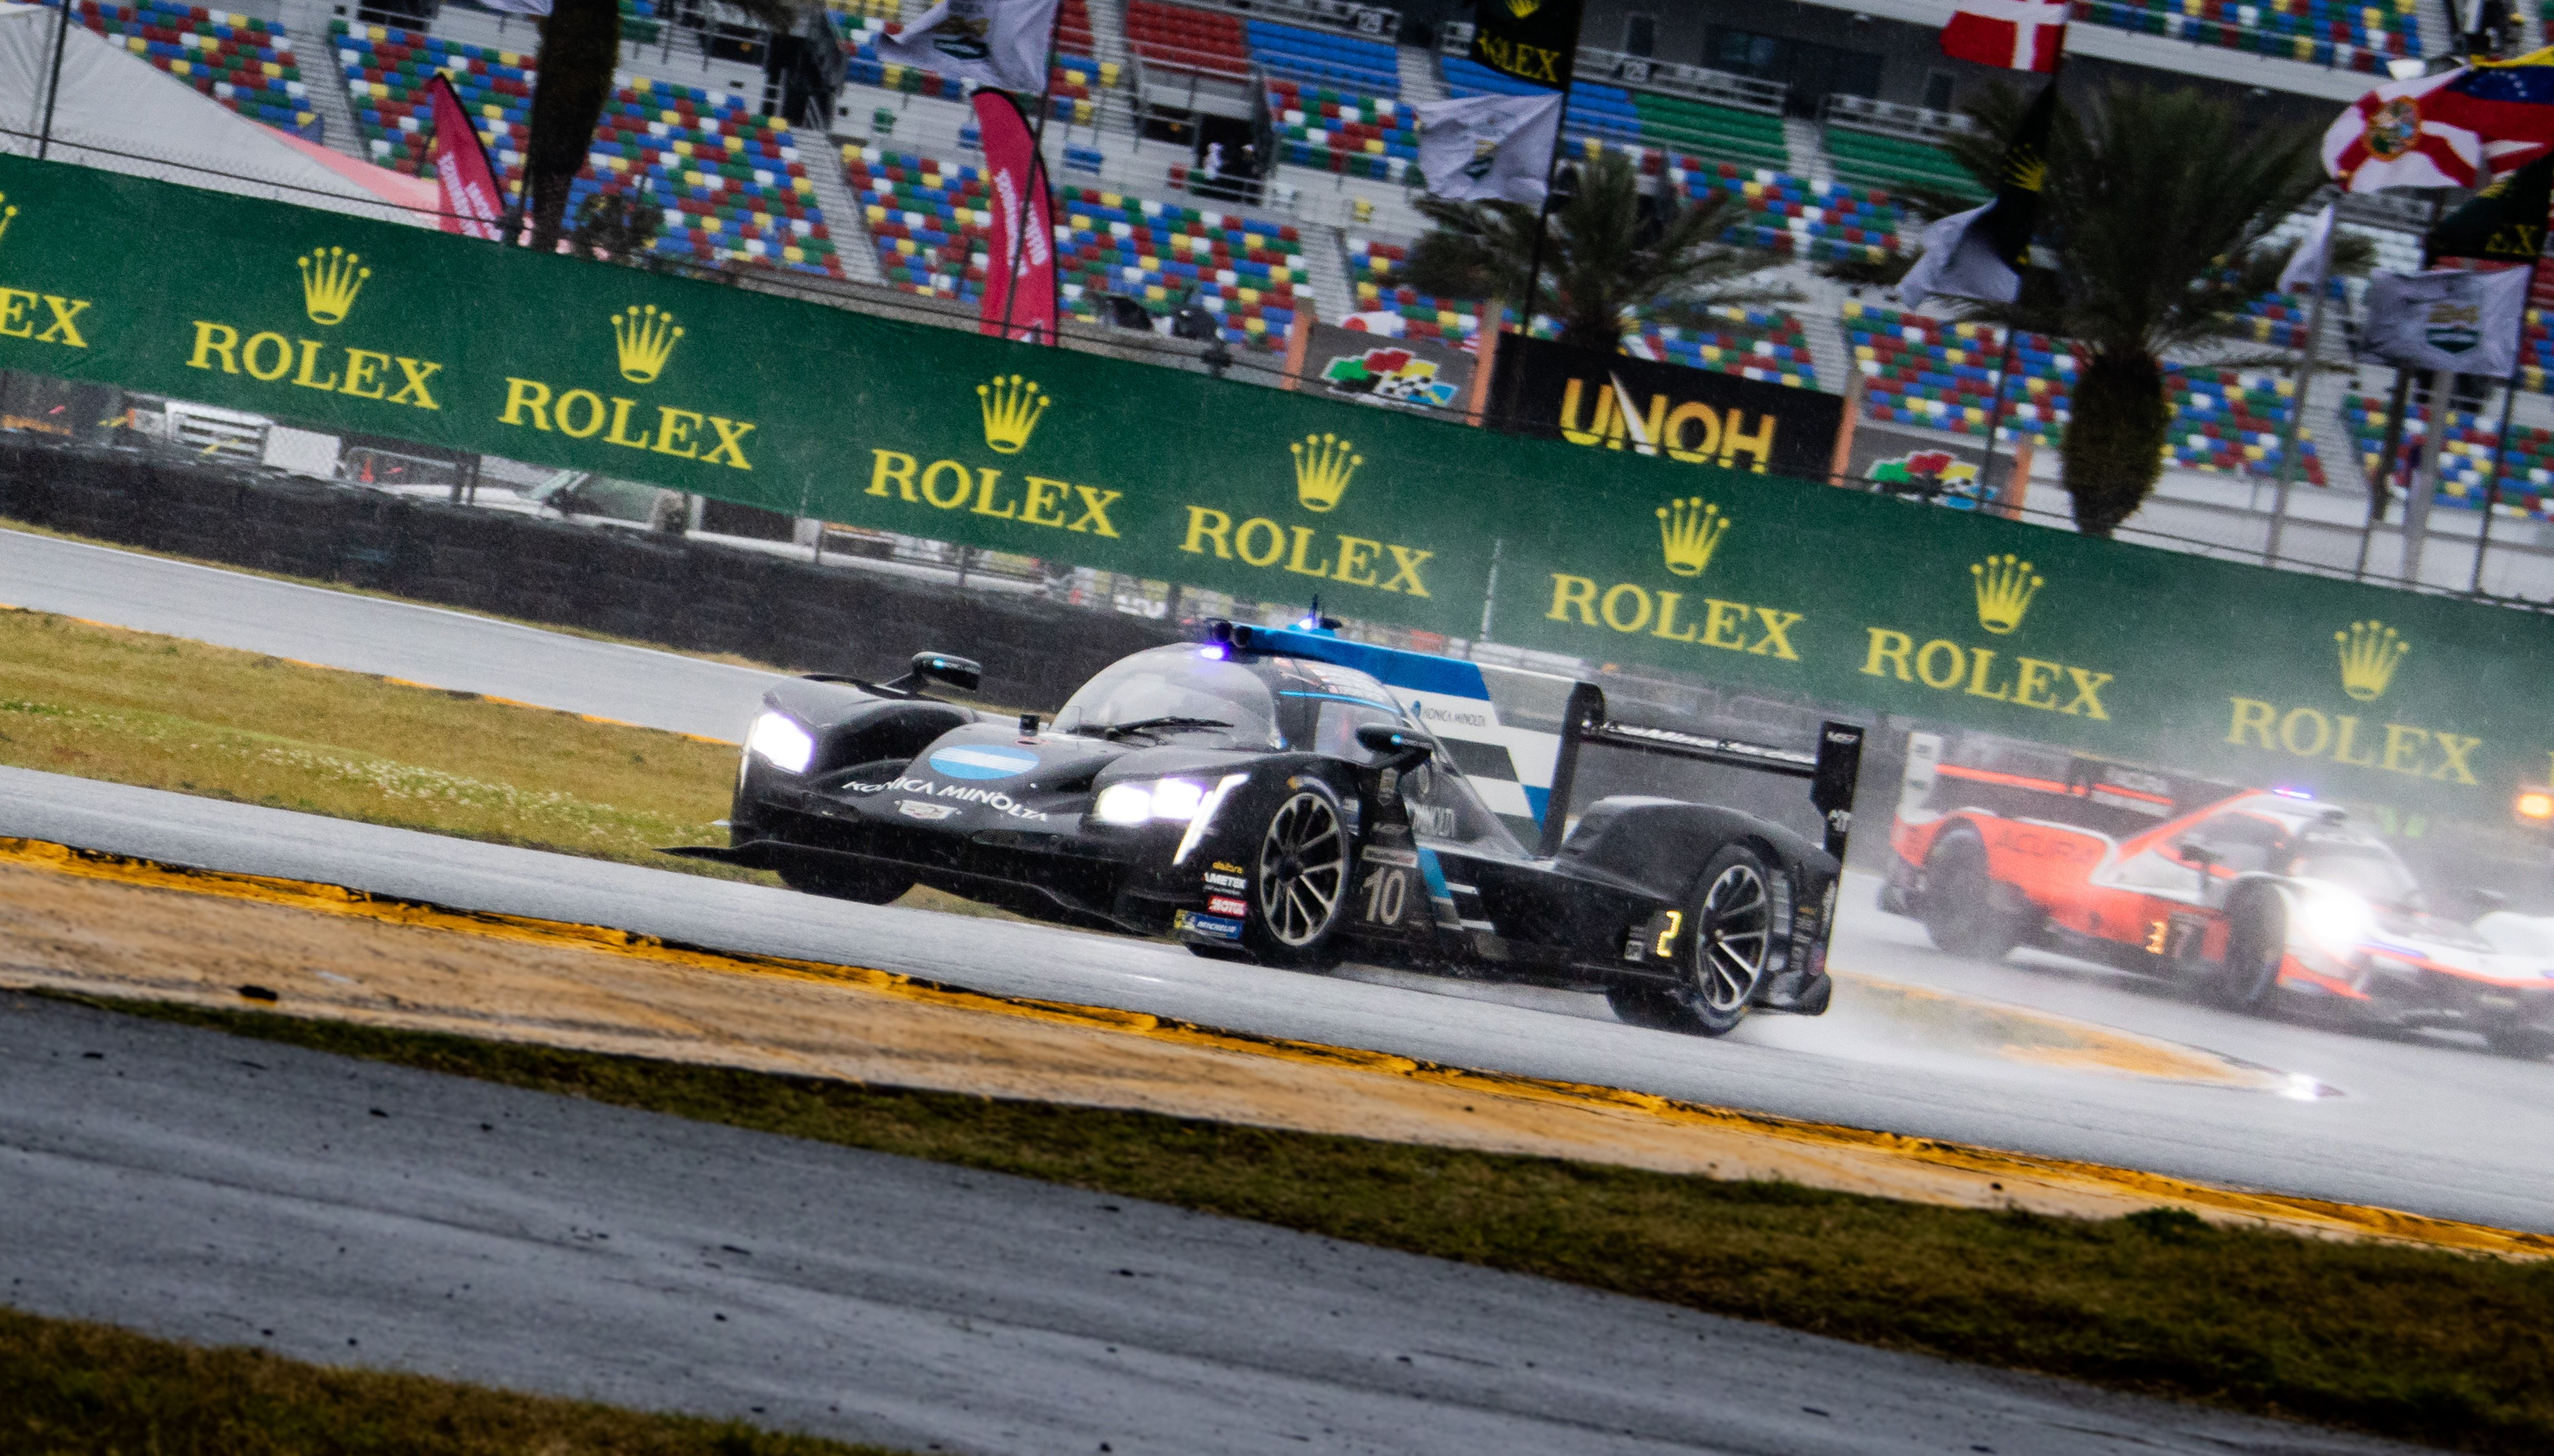 The 2019 Rolex 24 at Daytona Was Brutal | Car in My Life